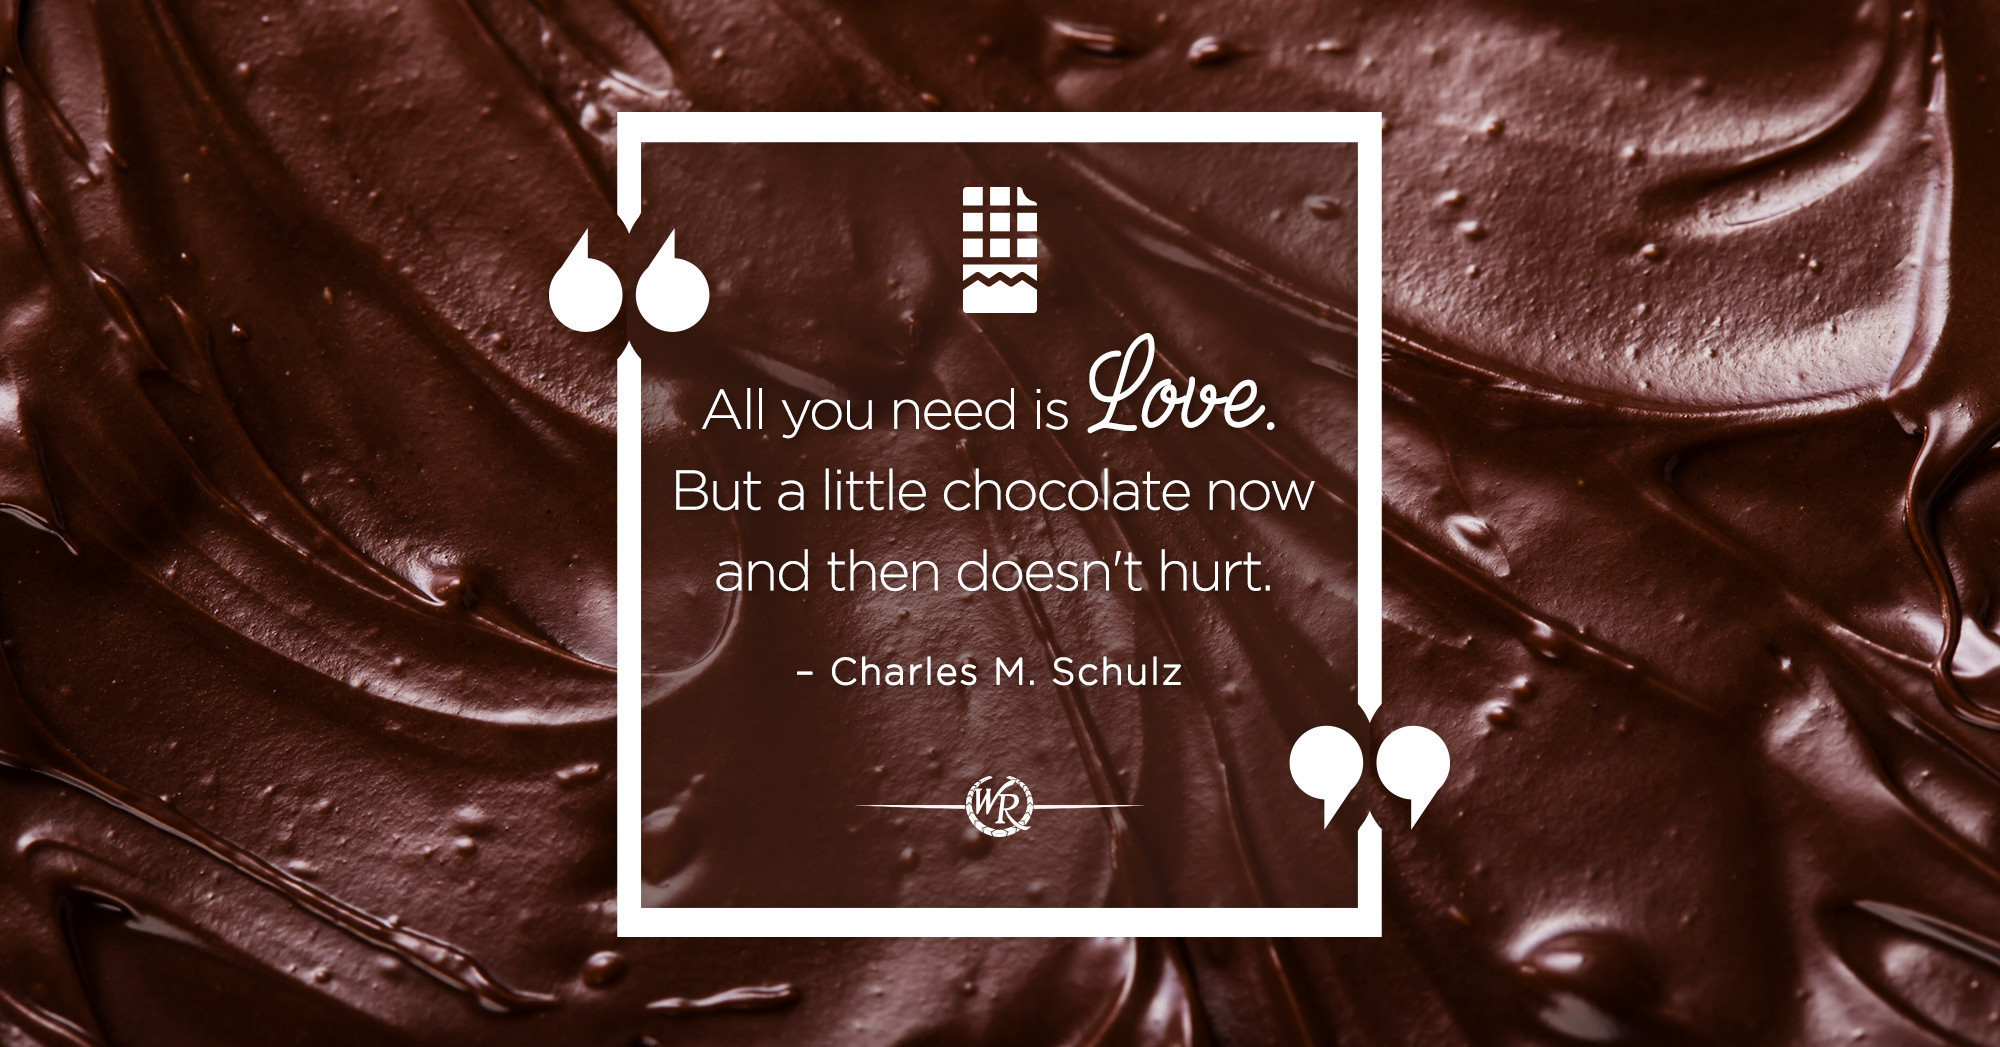 All You Need Is Love. But a Little Chocolate Now And Then Doesn't Hurt. - Charles M. Schulz | Motivational Quotes